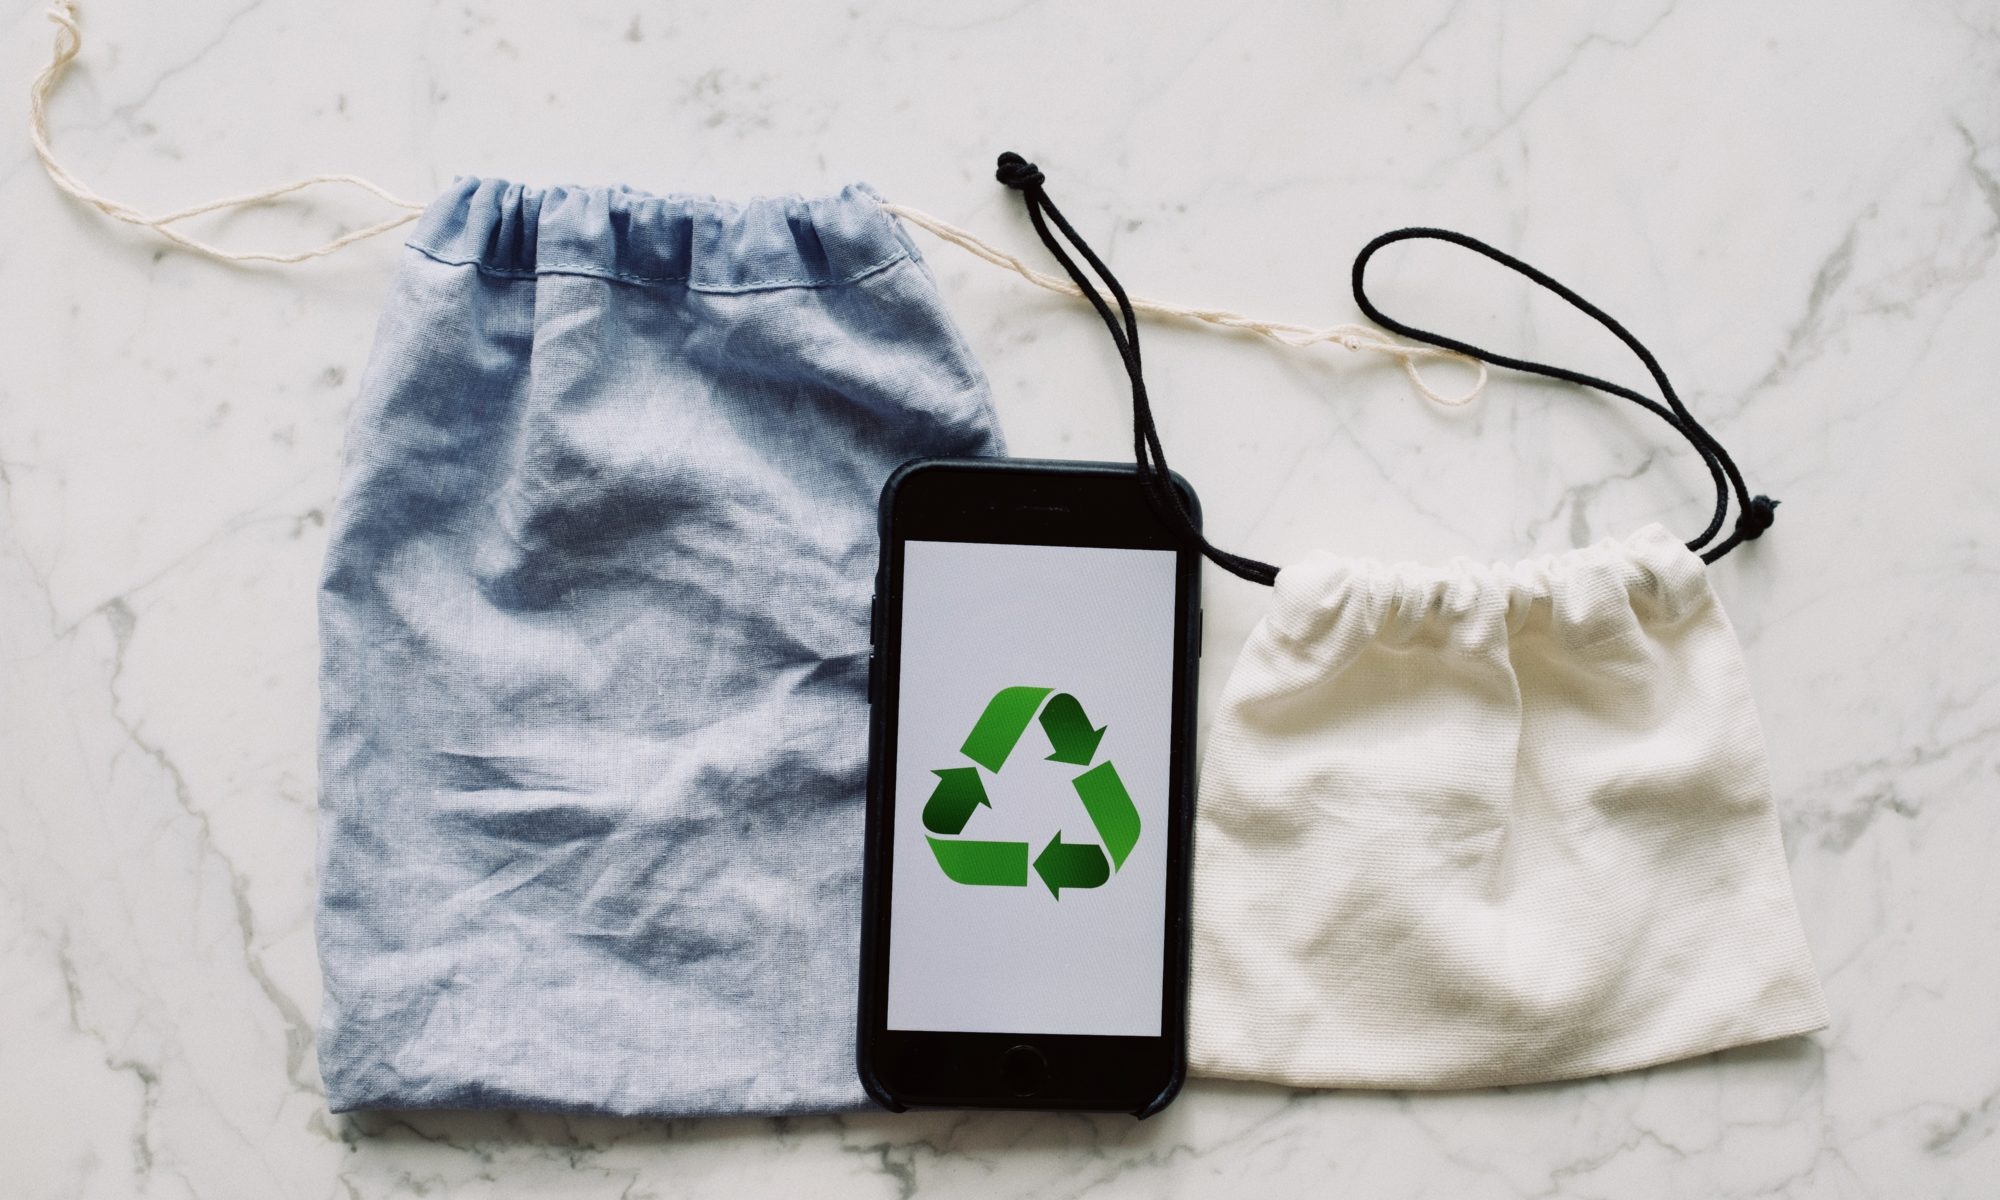 smartphone with recycling symbol on screen placed